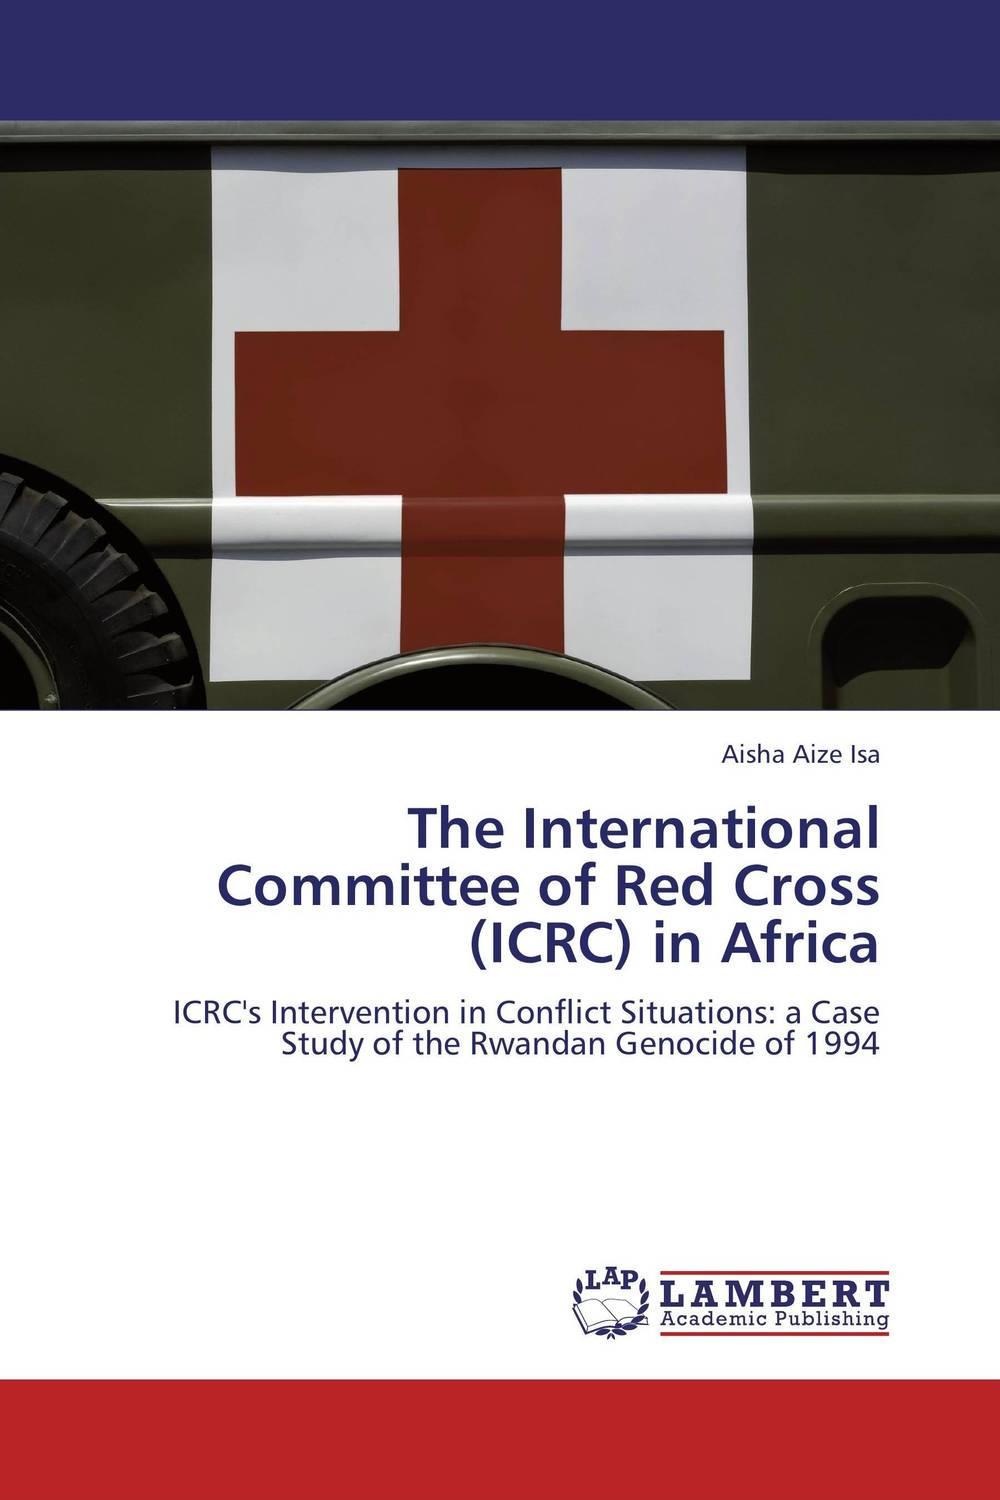 The International Committee of Red Cross (ICRC) in Africa oliver ramsbotham humanitarian intervention in contemporary conflict